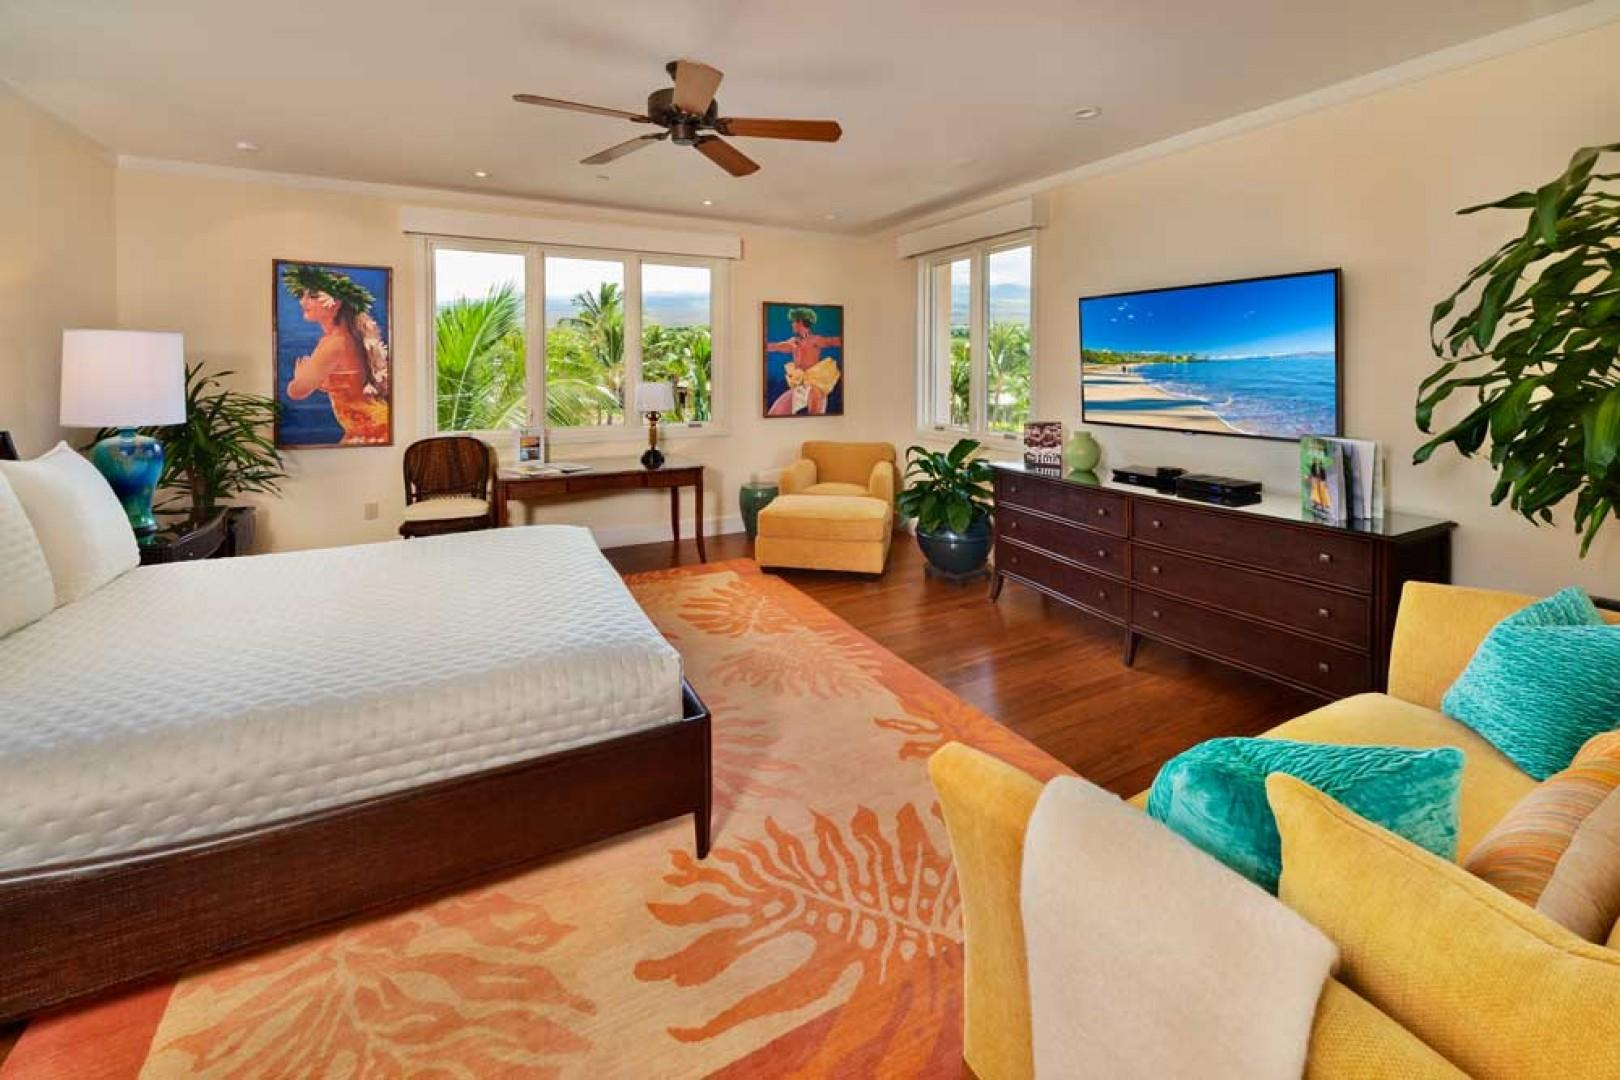 K507 Wailea Seashore Suite - Haleakala Mountain View Master Bedroom Suite with Cal King Bed, Original Art, Large Samsung 3D HDTV, DVD Player, HD Cable Box, iPod Dock, Apple TV, Desk, Sofa, Arm Chair